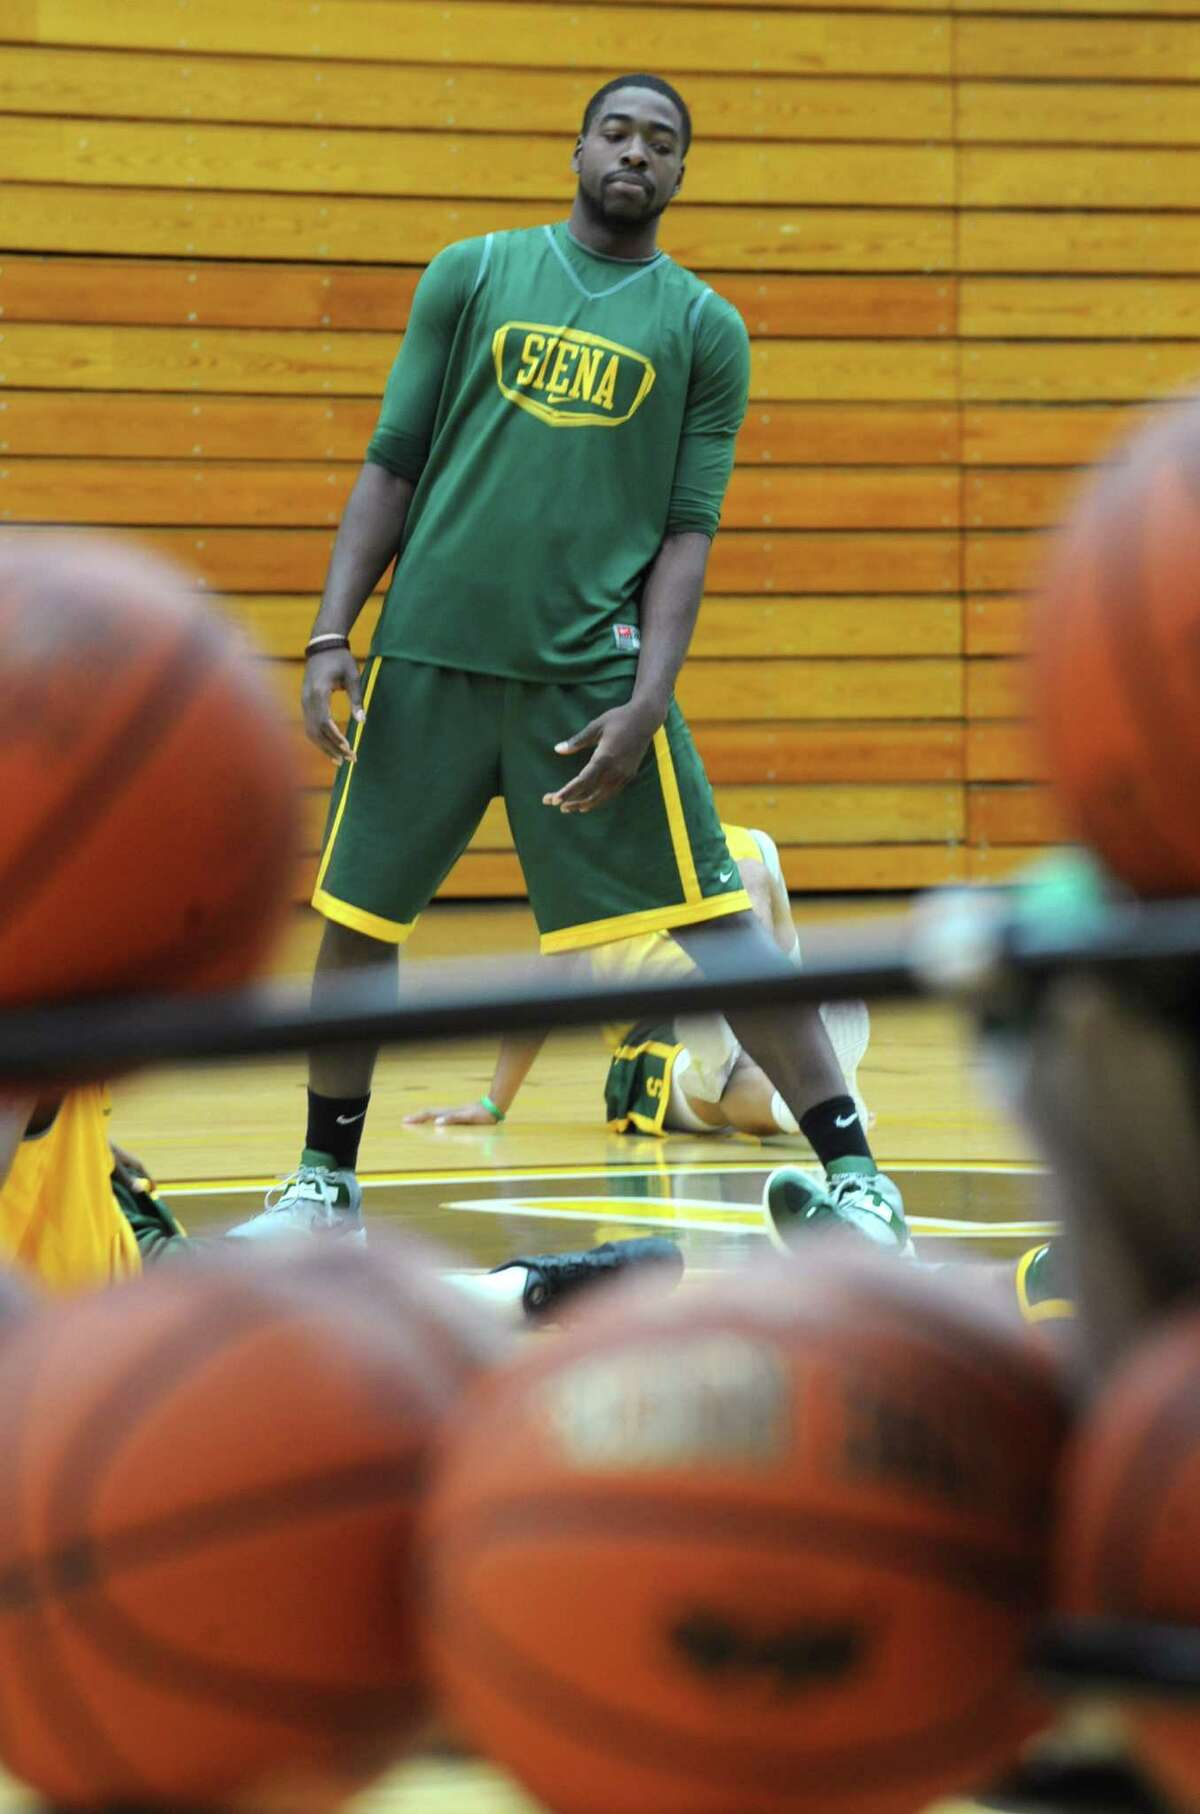 Siena basketball player O.D. Anosike stretches before practice on Tuesday Nov. 27, 2012 in Loudonville, N.Y. (Lori Van Buren / Times Union)